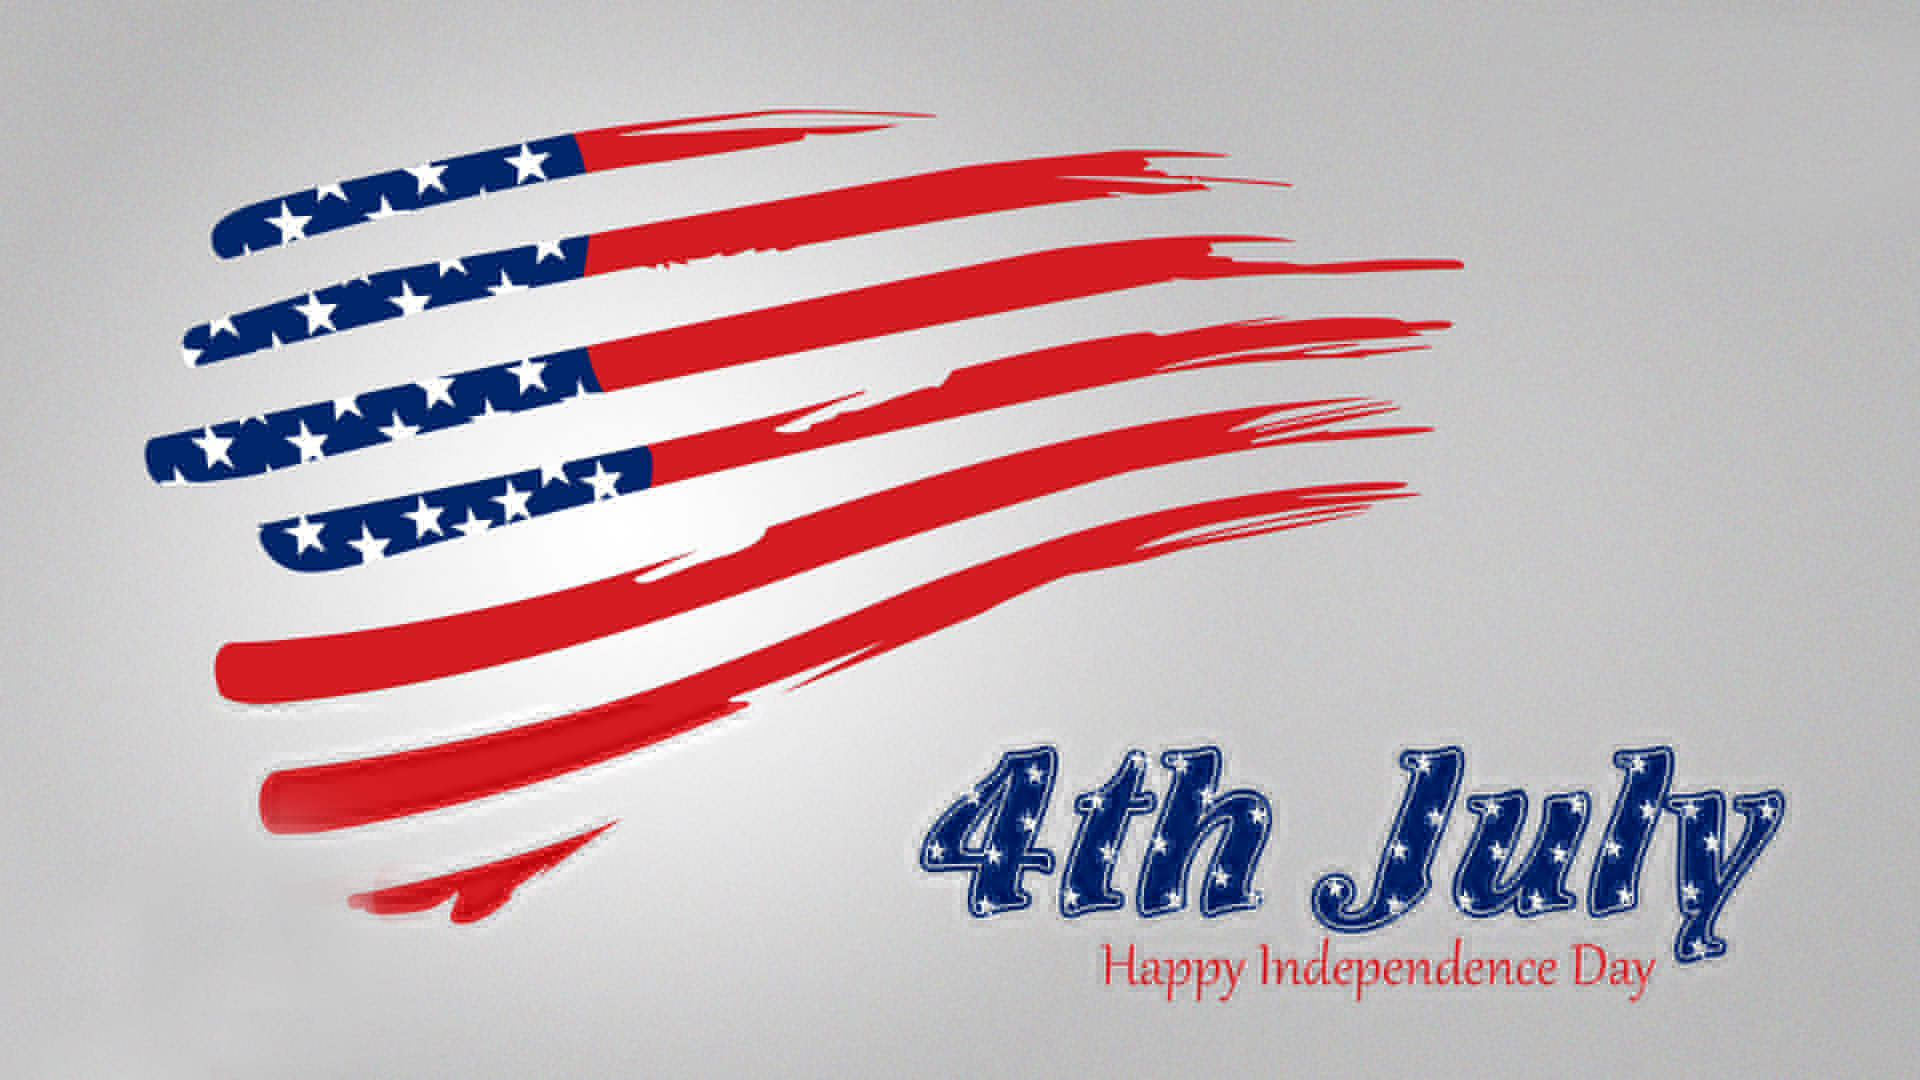 Independence Day United States Of America Wallpaper Free Download